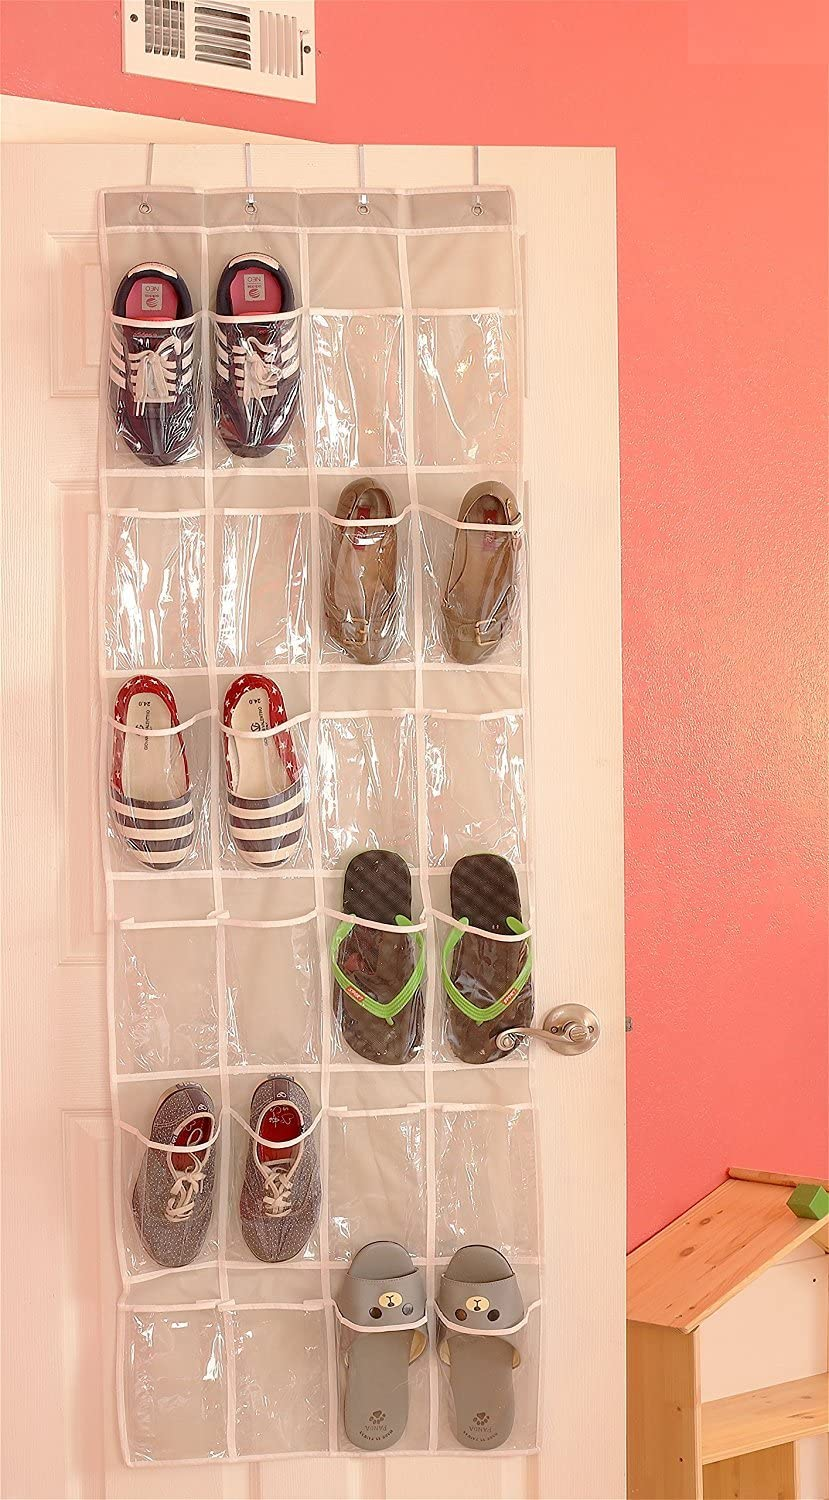 Check out 10 Valuable Winter Storage Ideas You Need On Chilly Days at https://diyprojects.com/winter-storage-ideas/